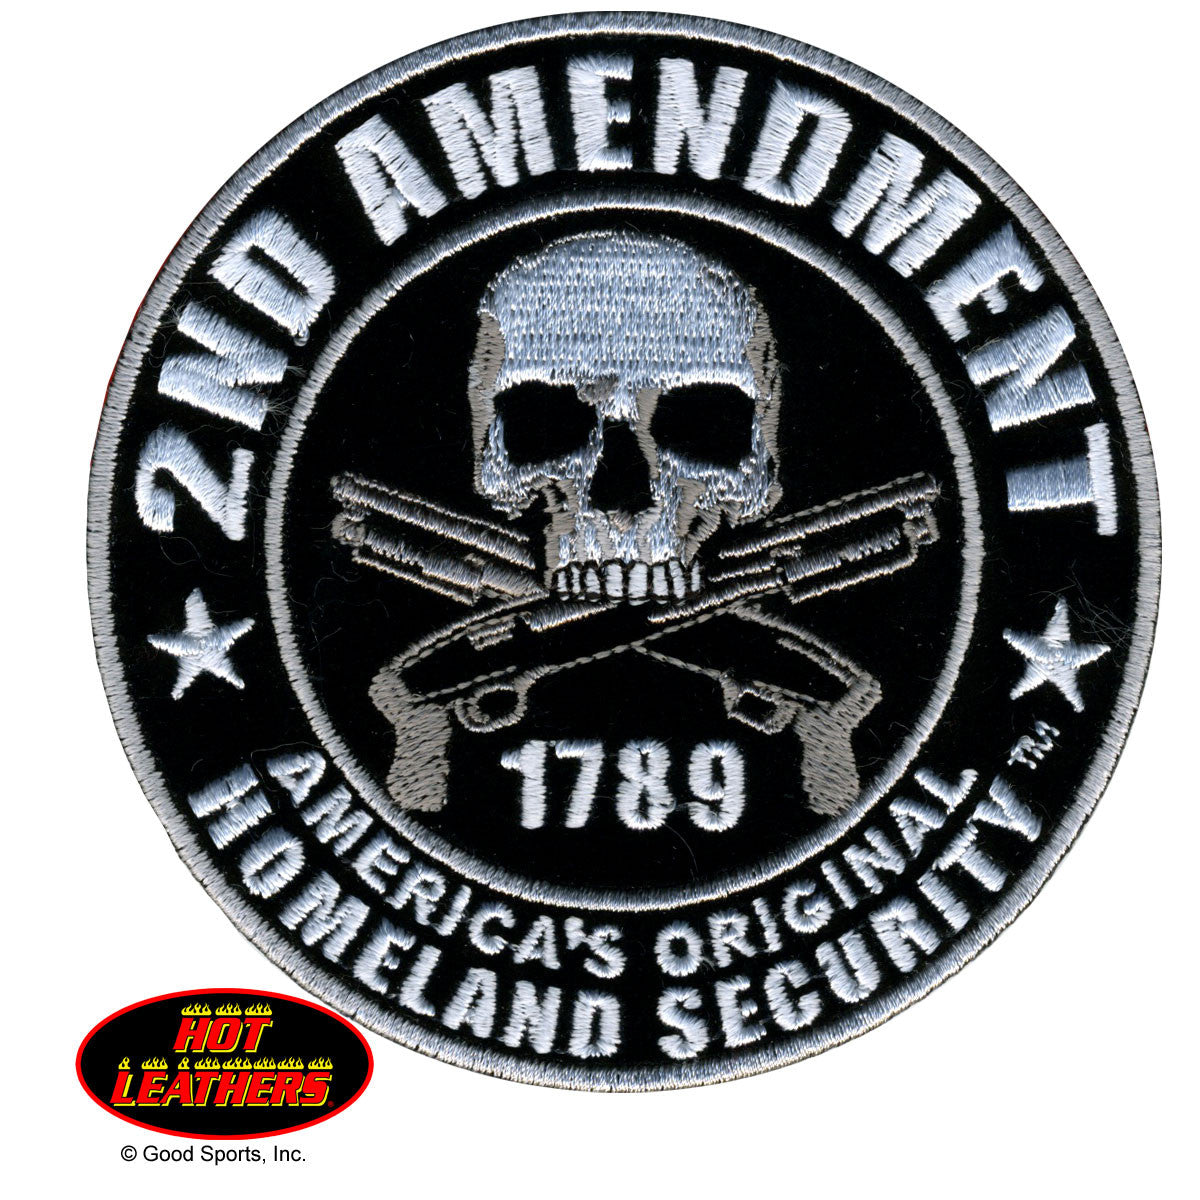 2nd Amendment Homeland Security - Maine-Line Leather